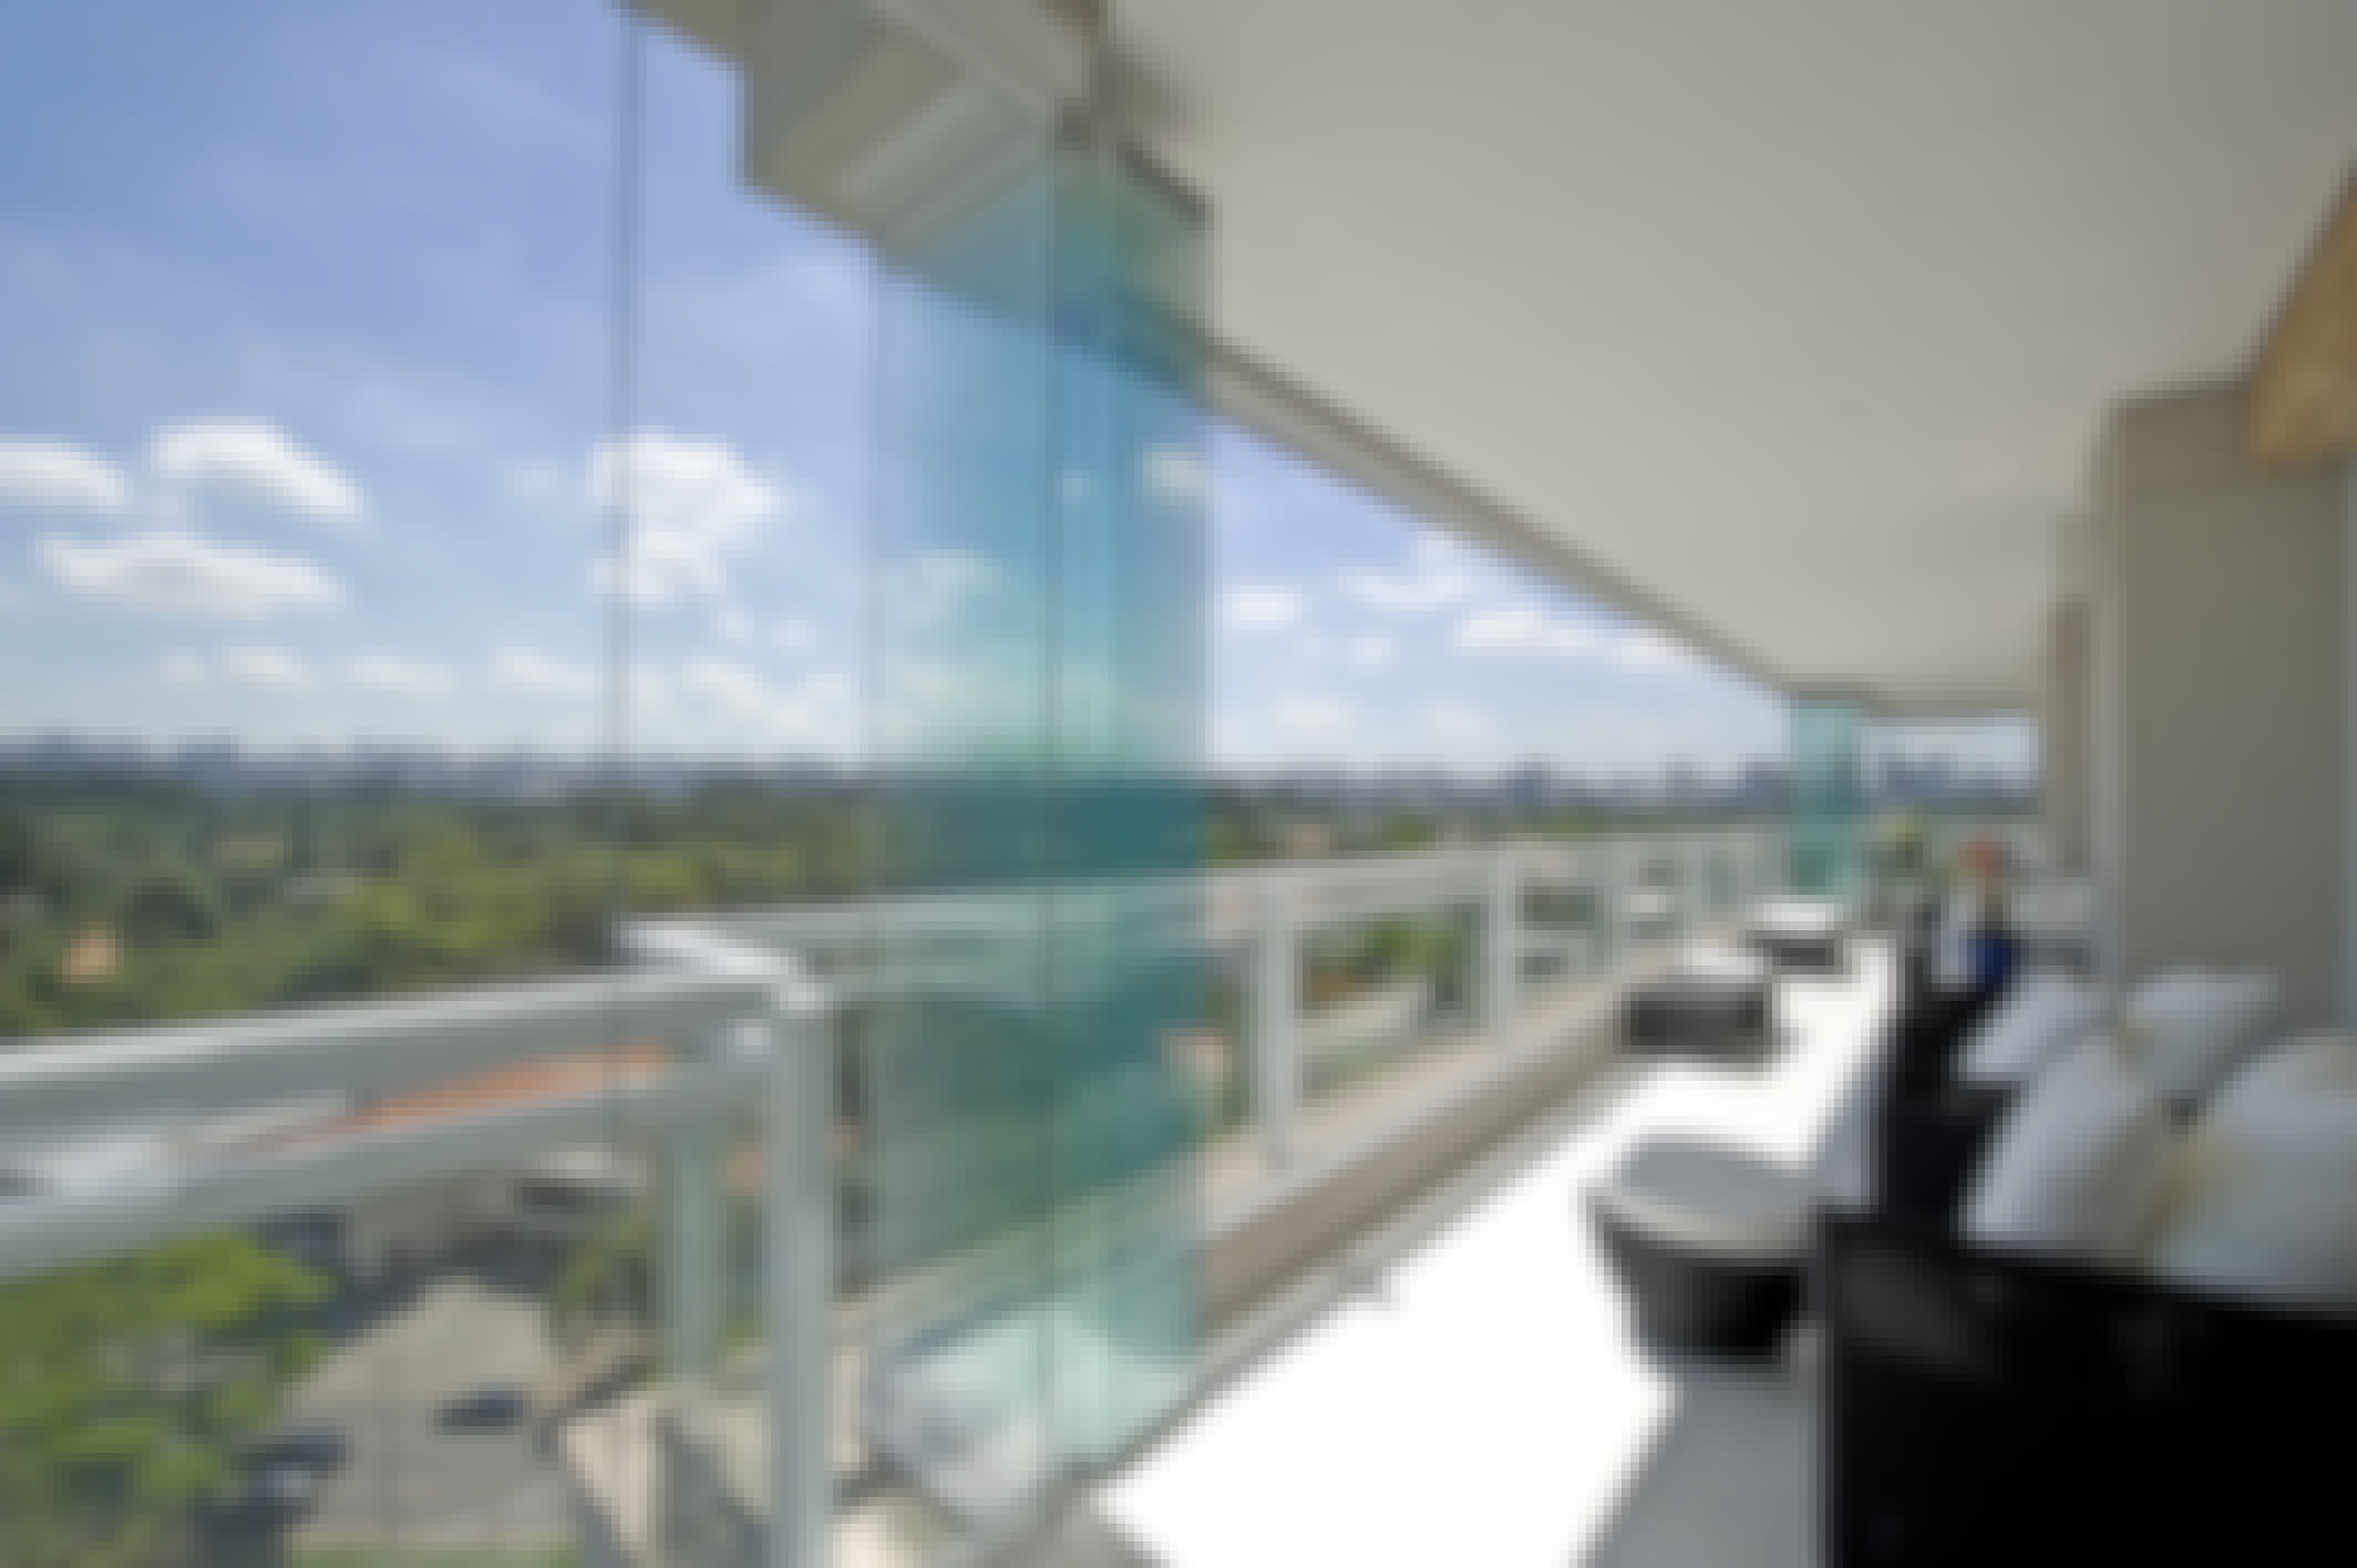 Balcony enclosed with an all glass operable system.